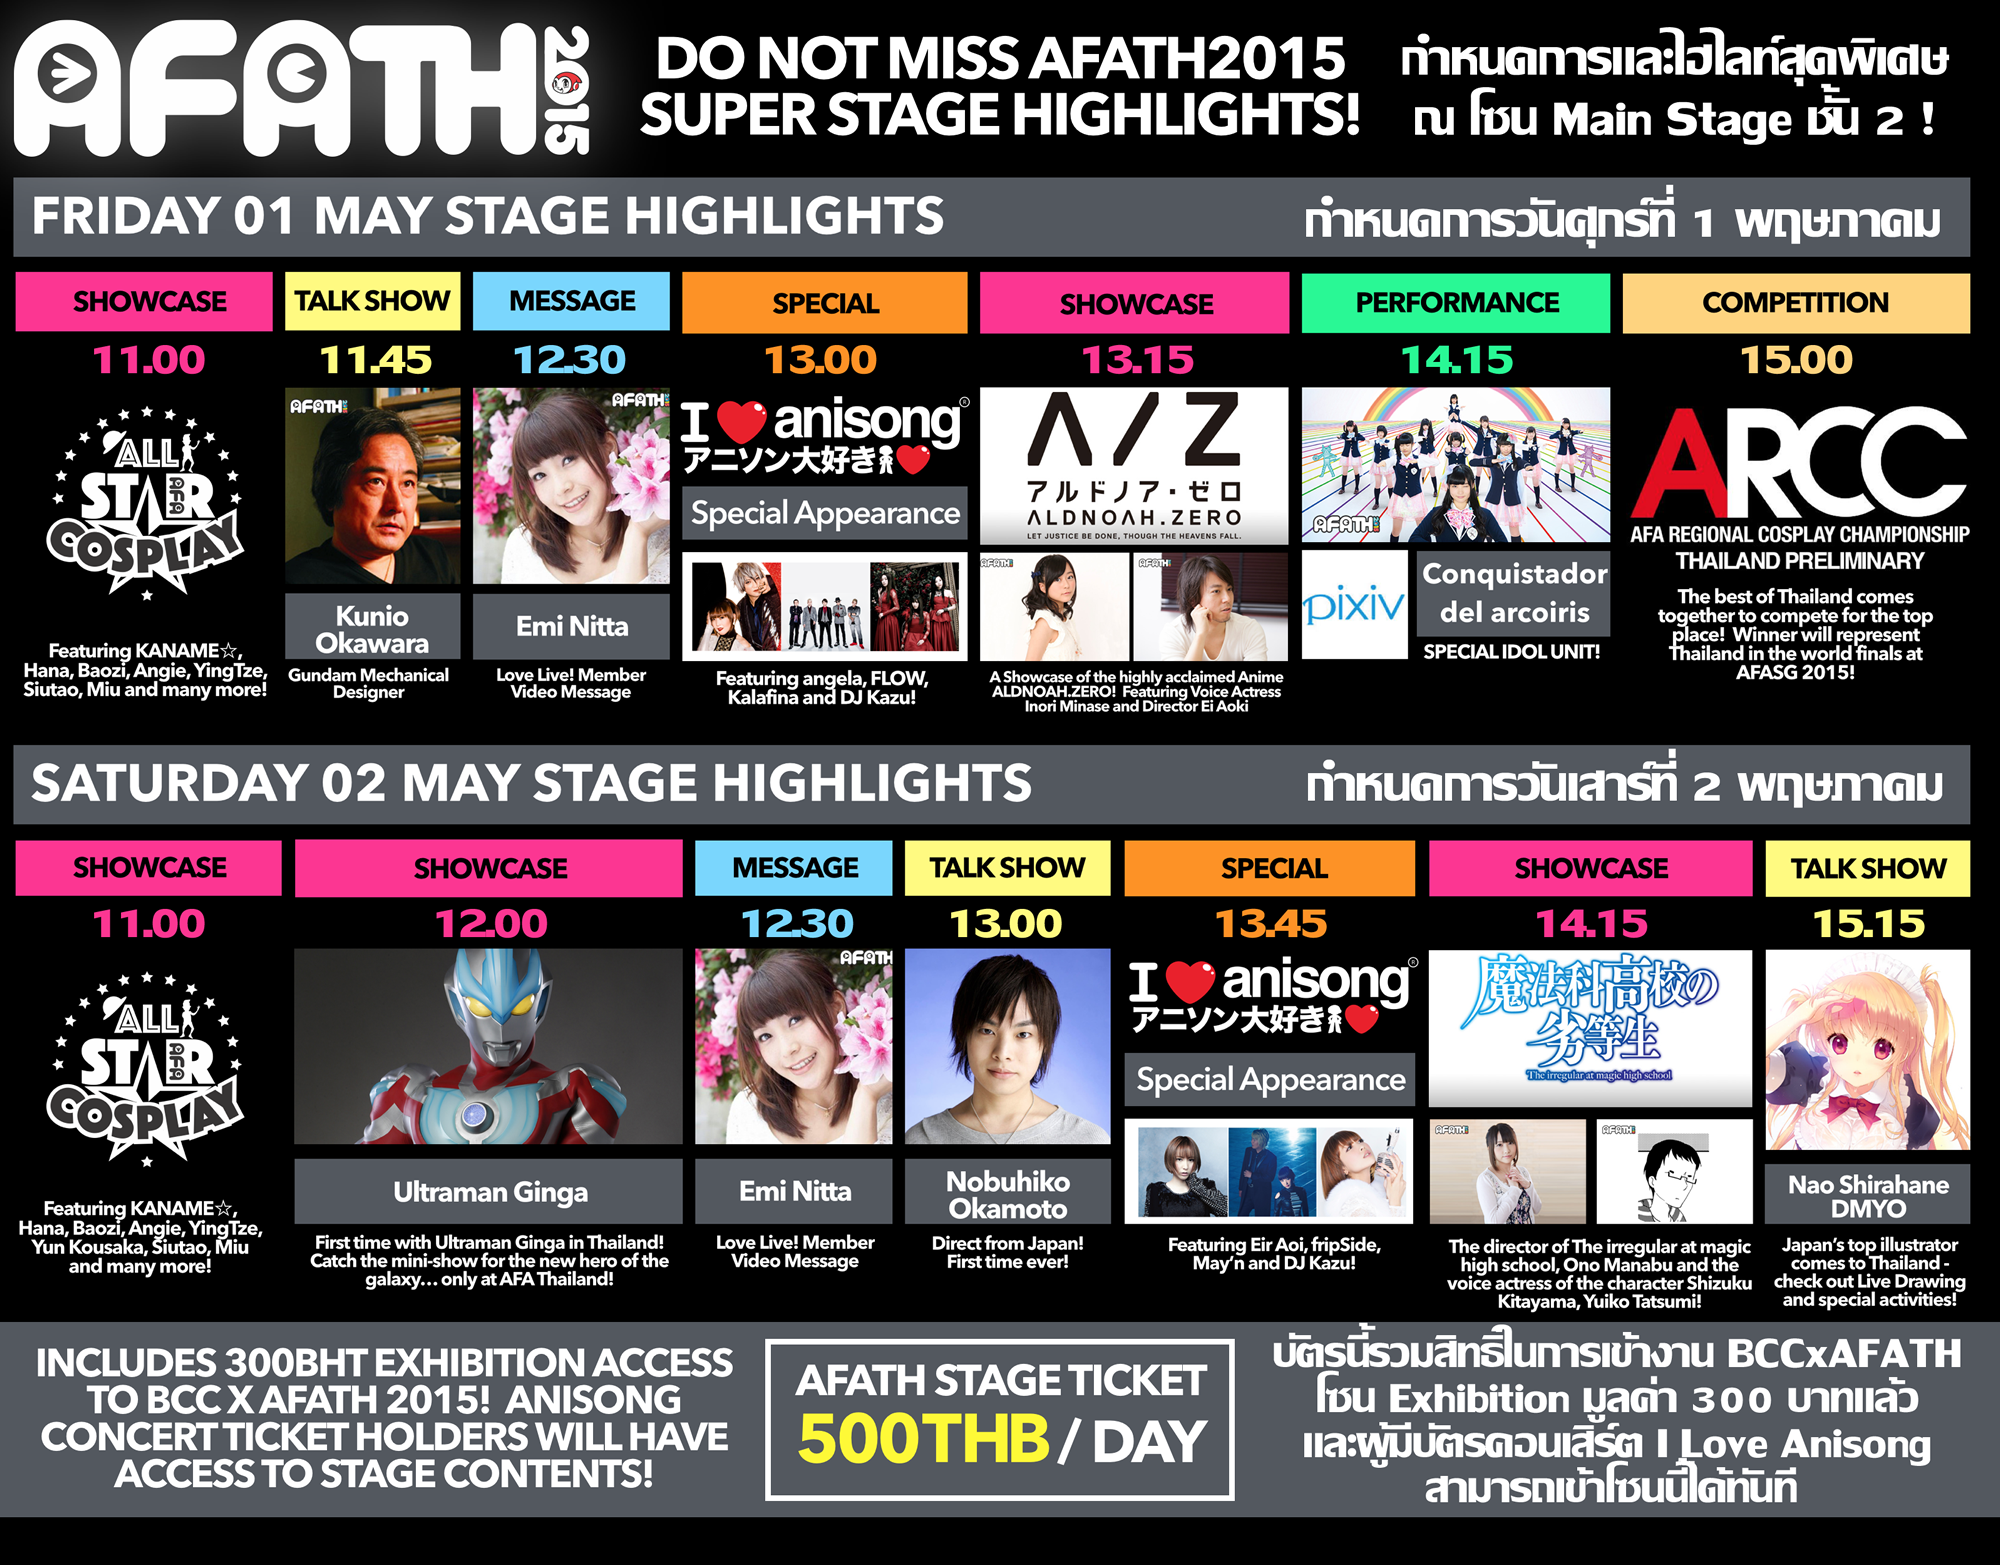 AFATH 2015 MAIN STAGE SCHEDULE